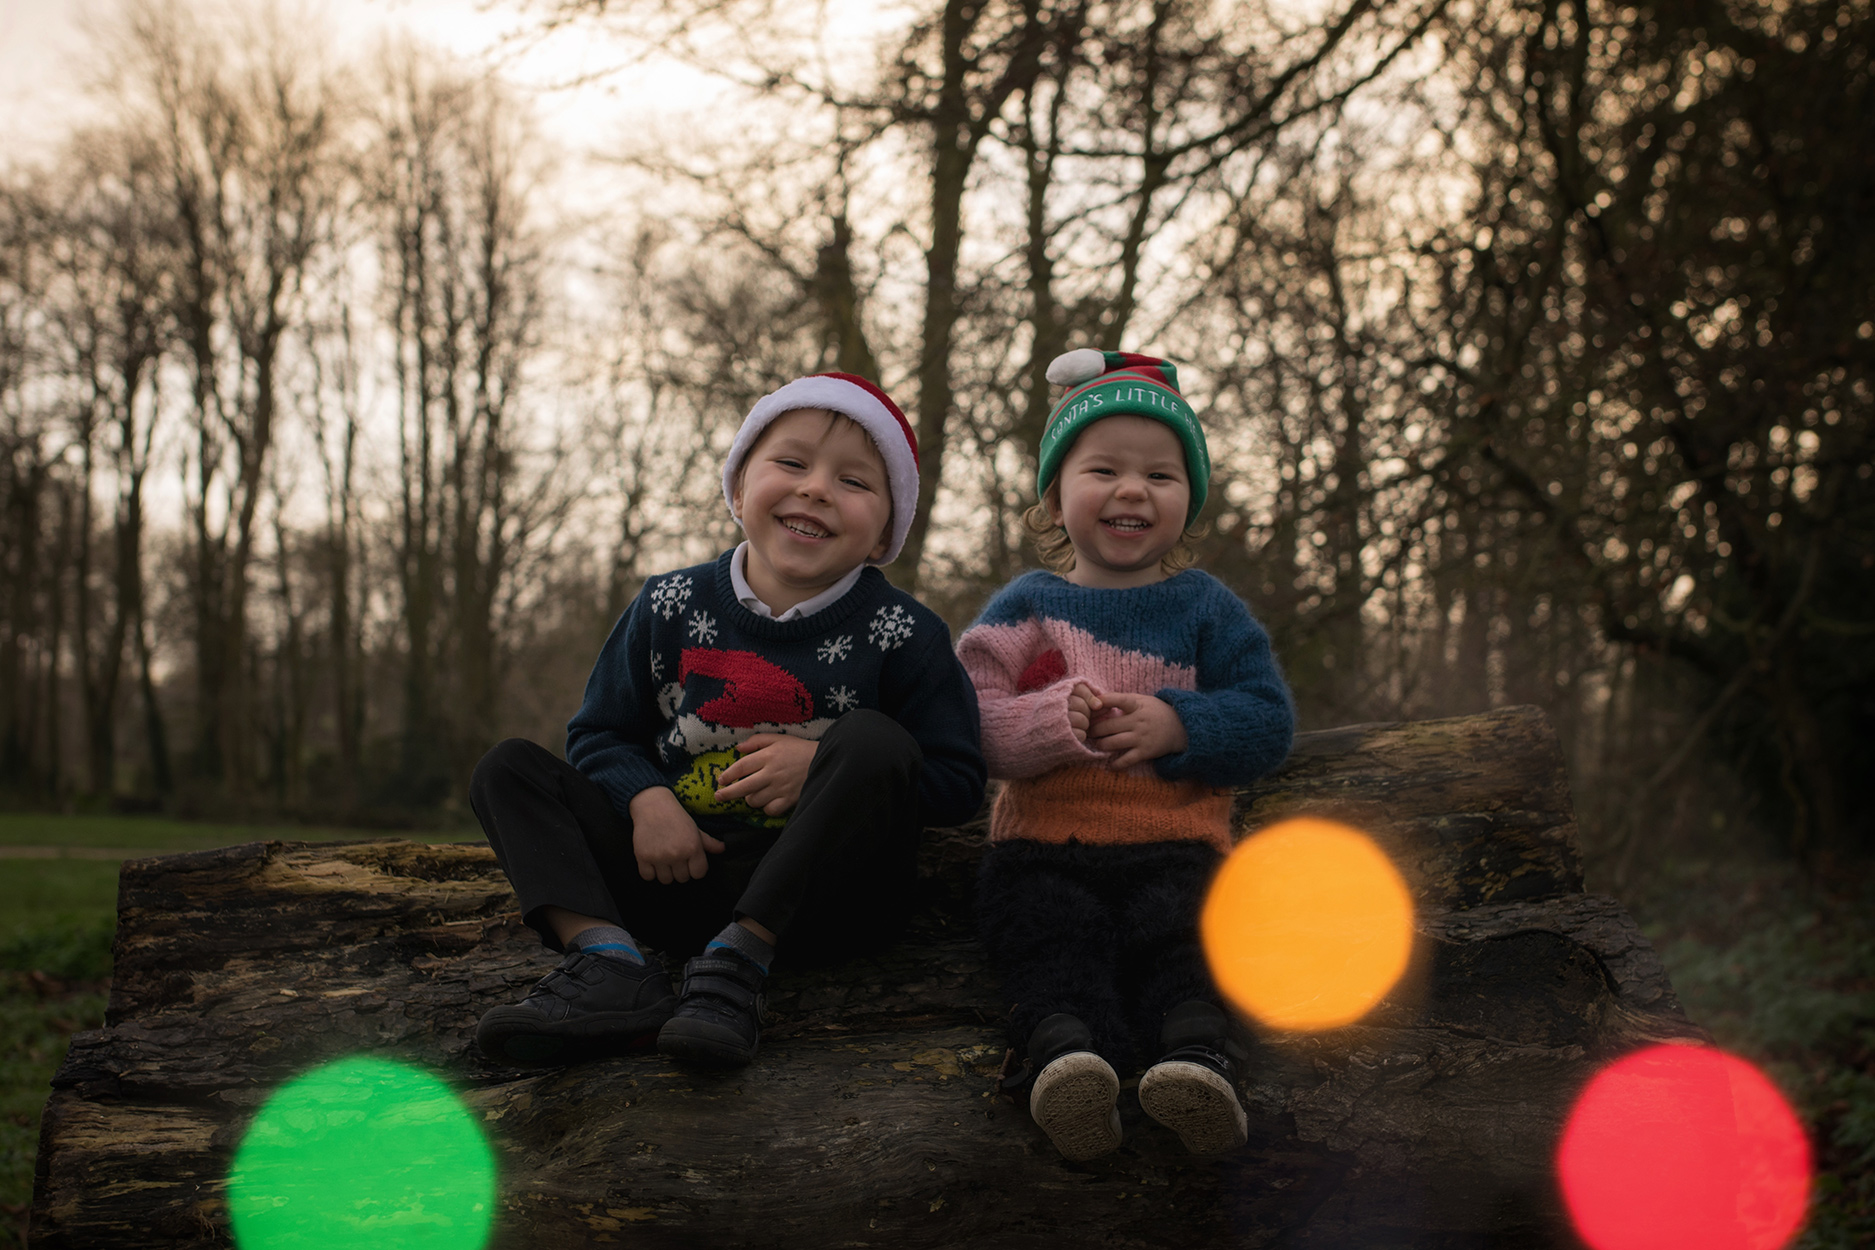 Family with two brothers wearing The Animals Obervatory, Maed for Mini and Rylee and Cru posing for Christmas photos with teddy bear wearing festivity's hats in woodland